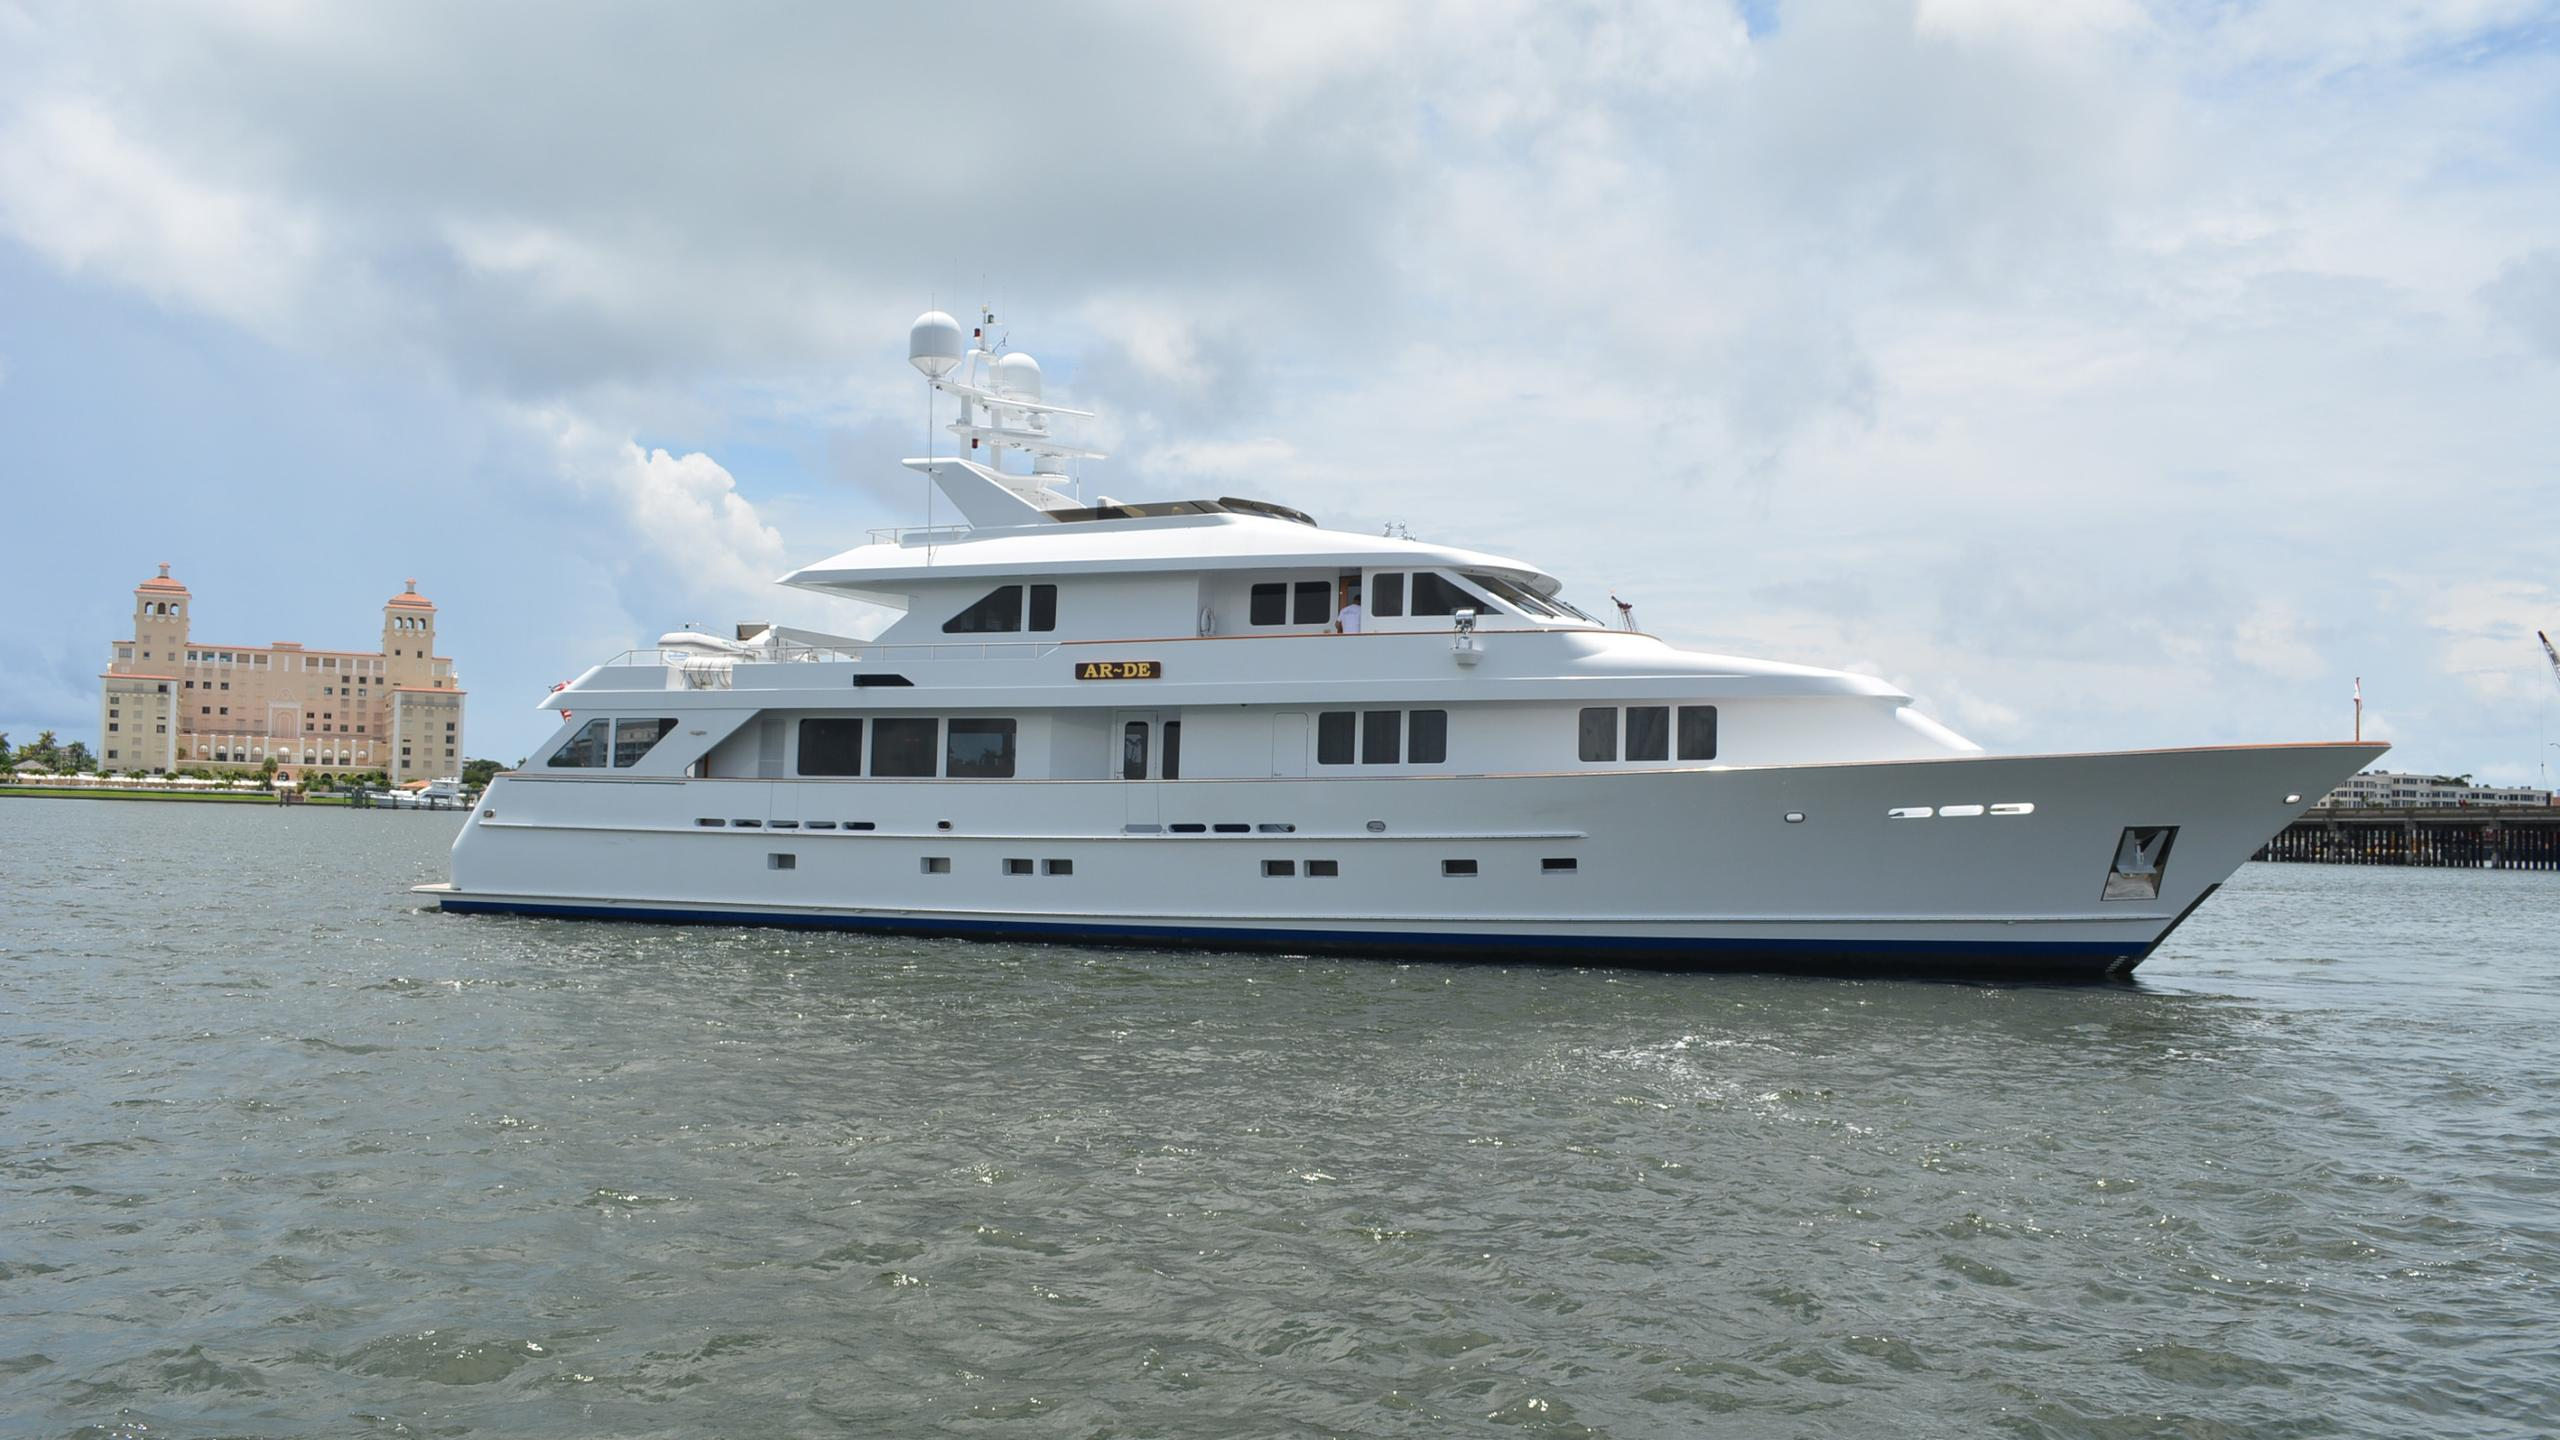 Ar De motor yacht for sale profile